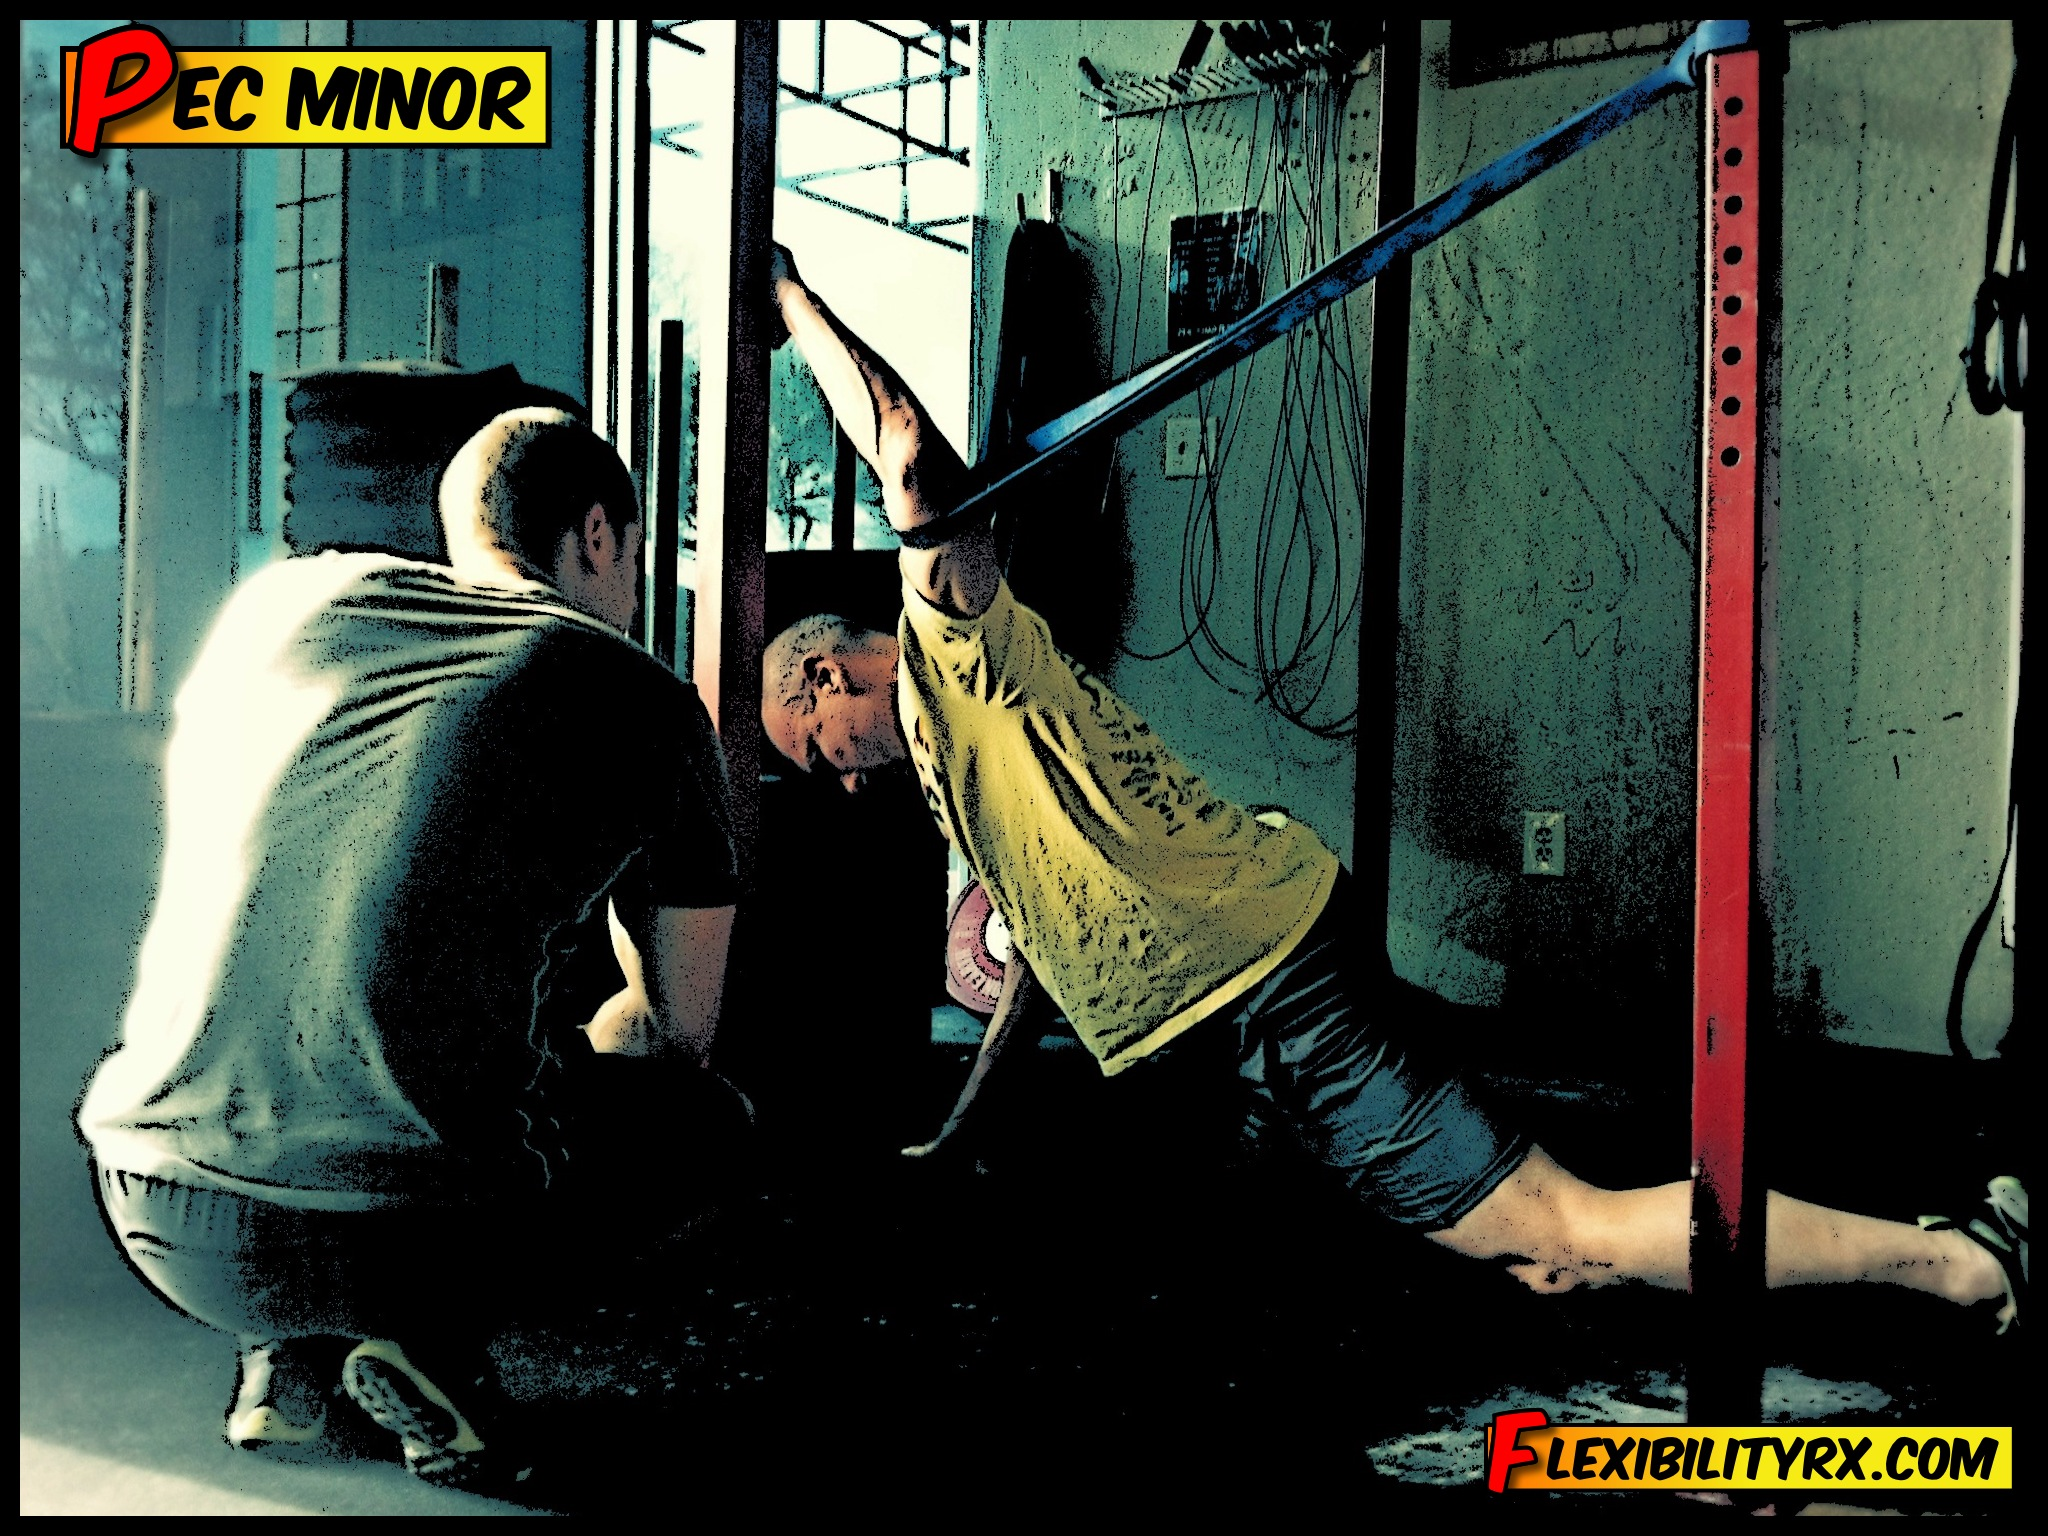 The Best Way To Stretch Pectoralis Minor